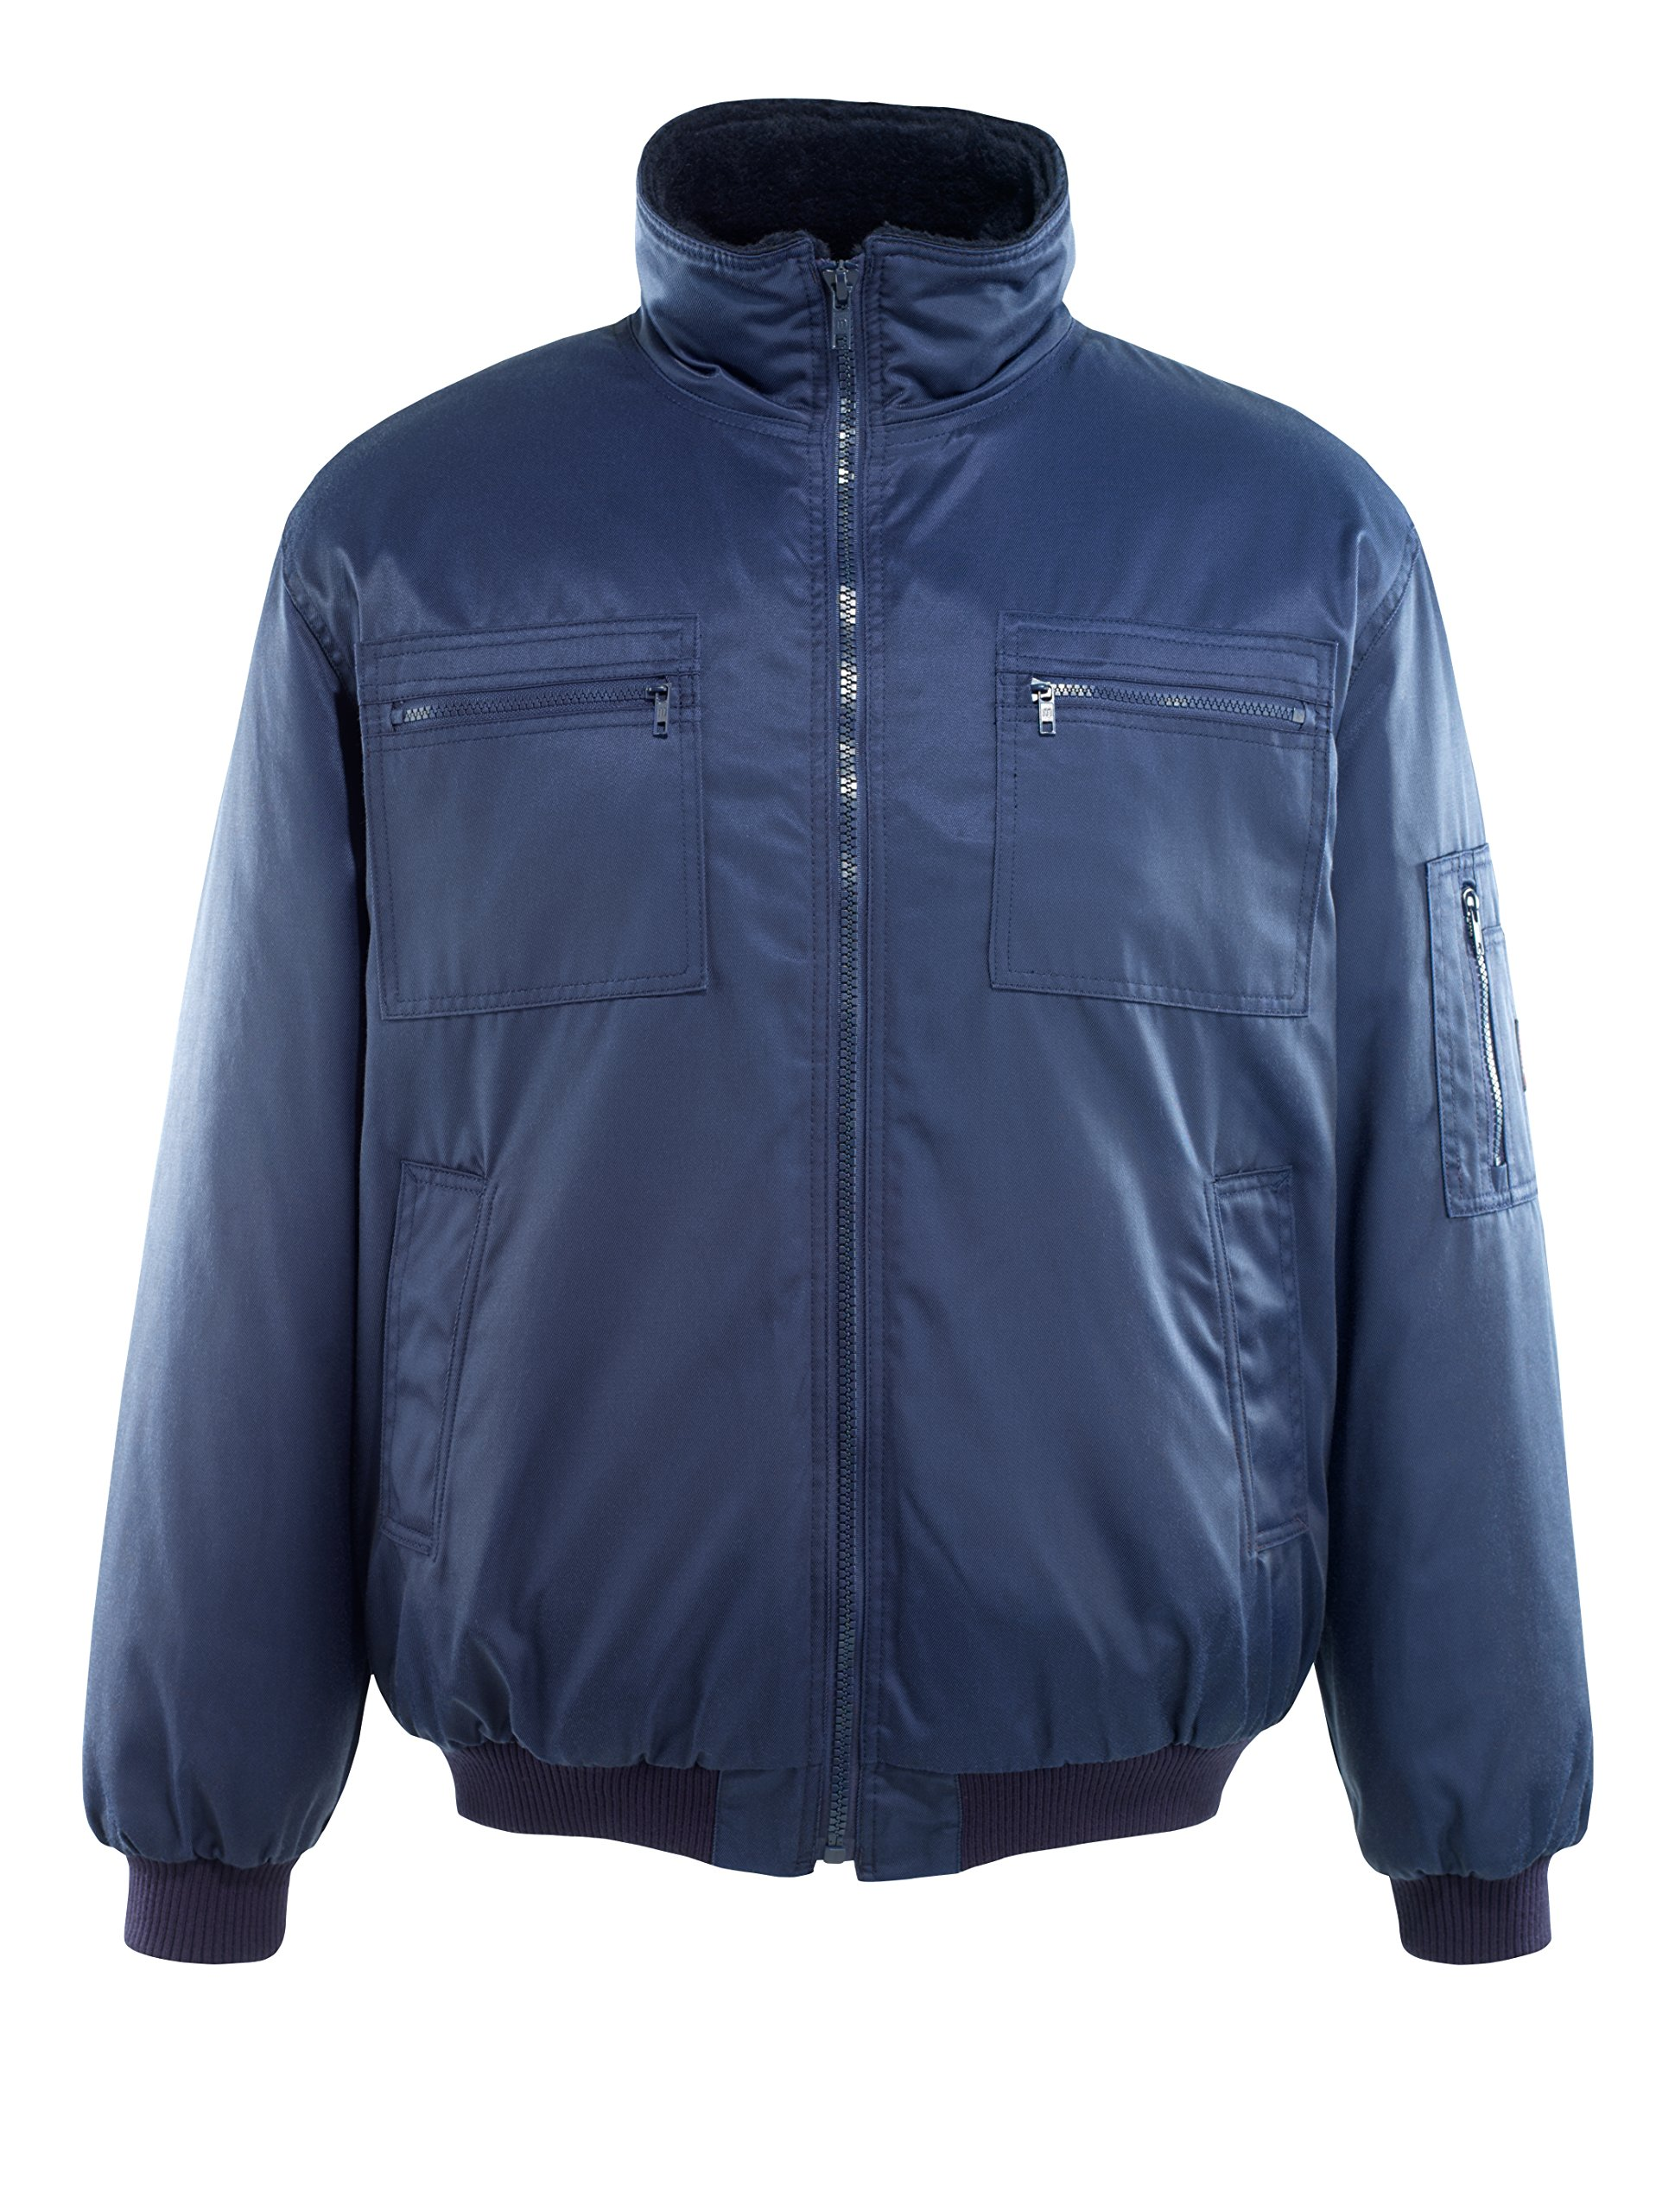 Mascot 00516-620-01-2XL''Alaska'' Pilot Jacket, XX-Large, Navy Blue by Mascot (Image #1)